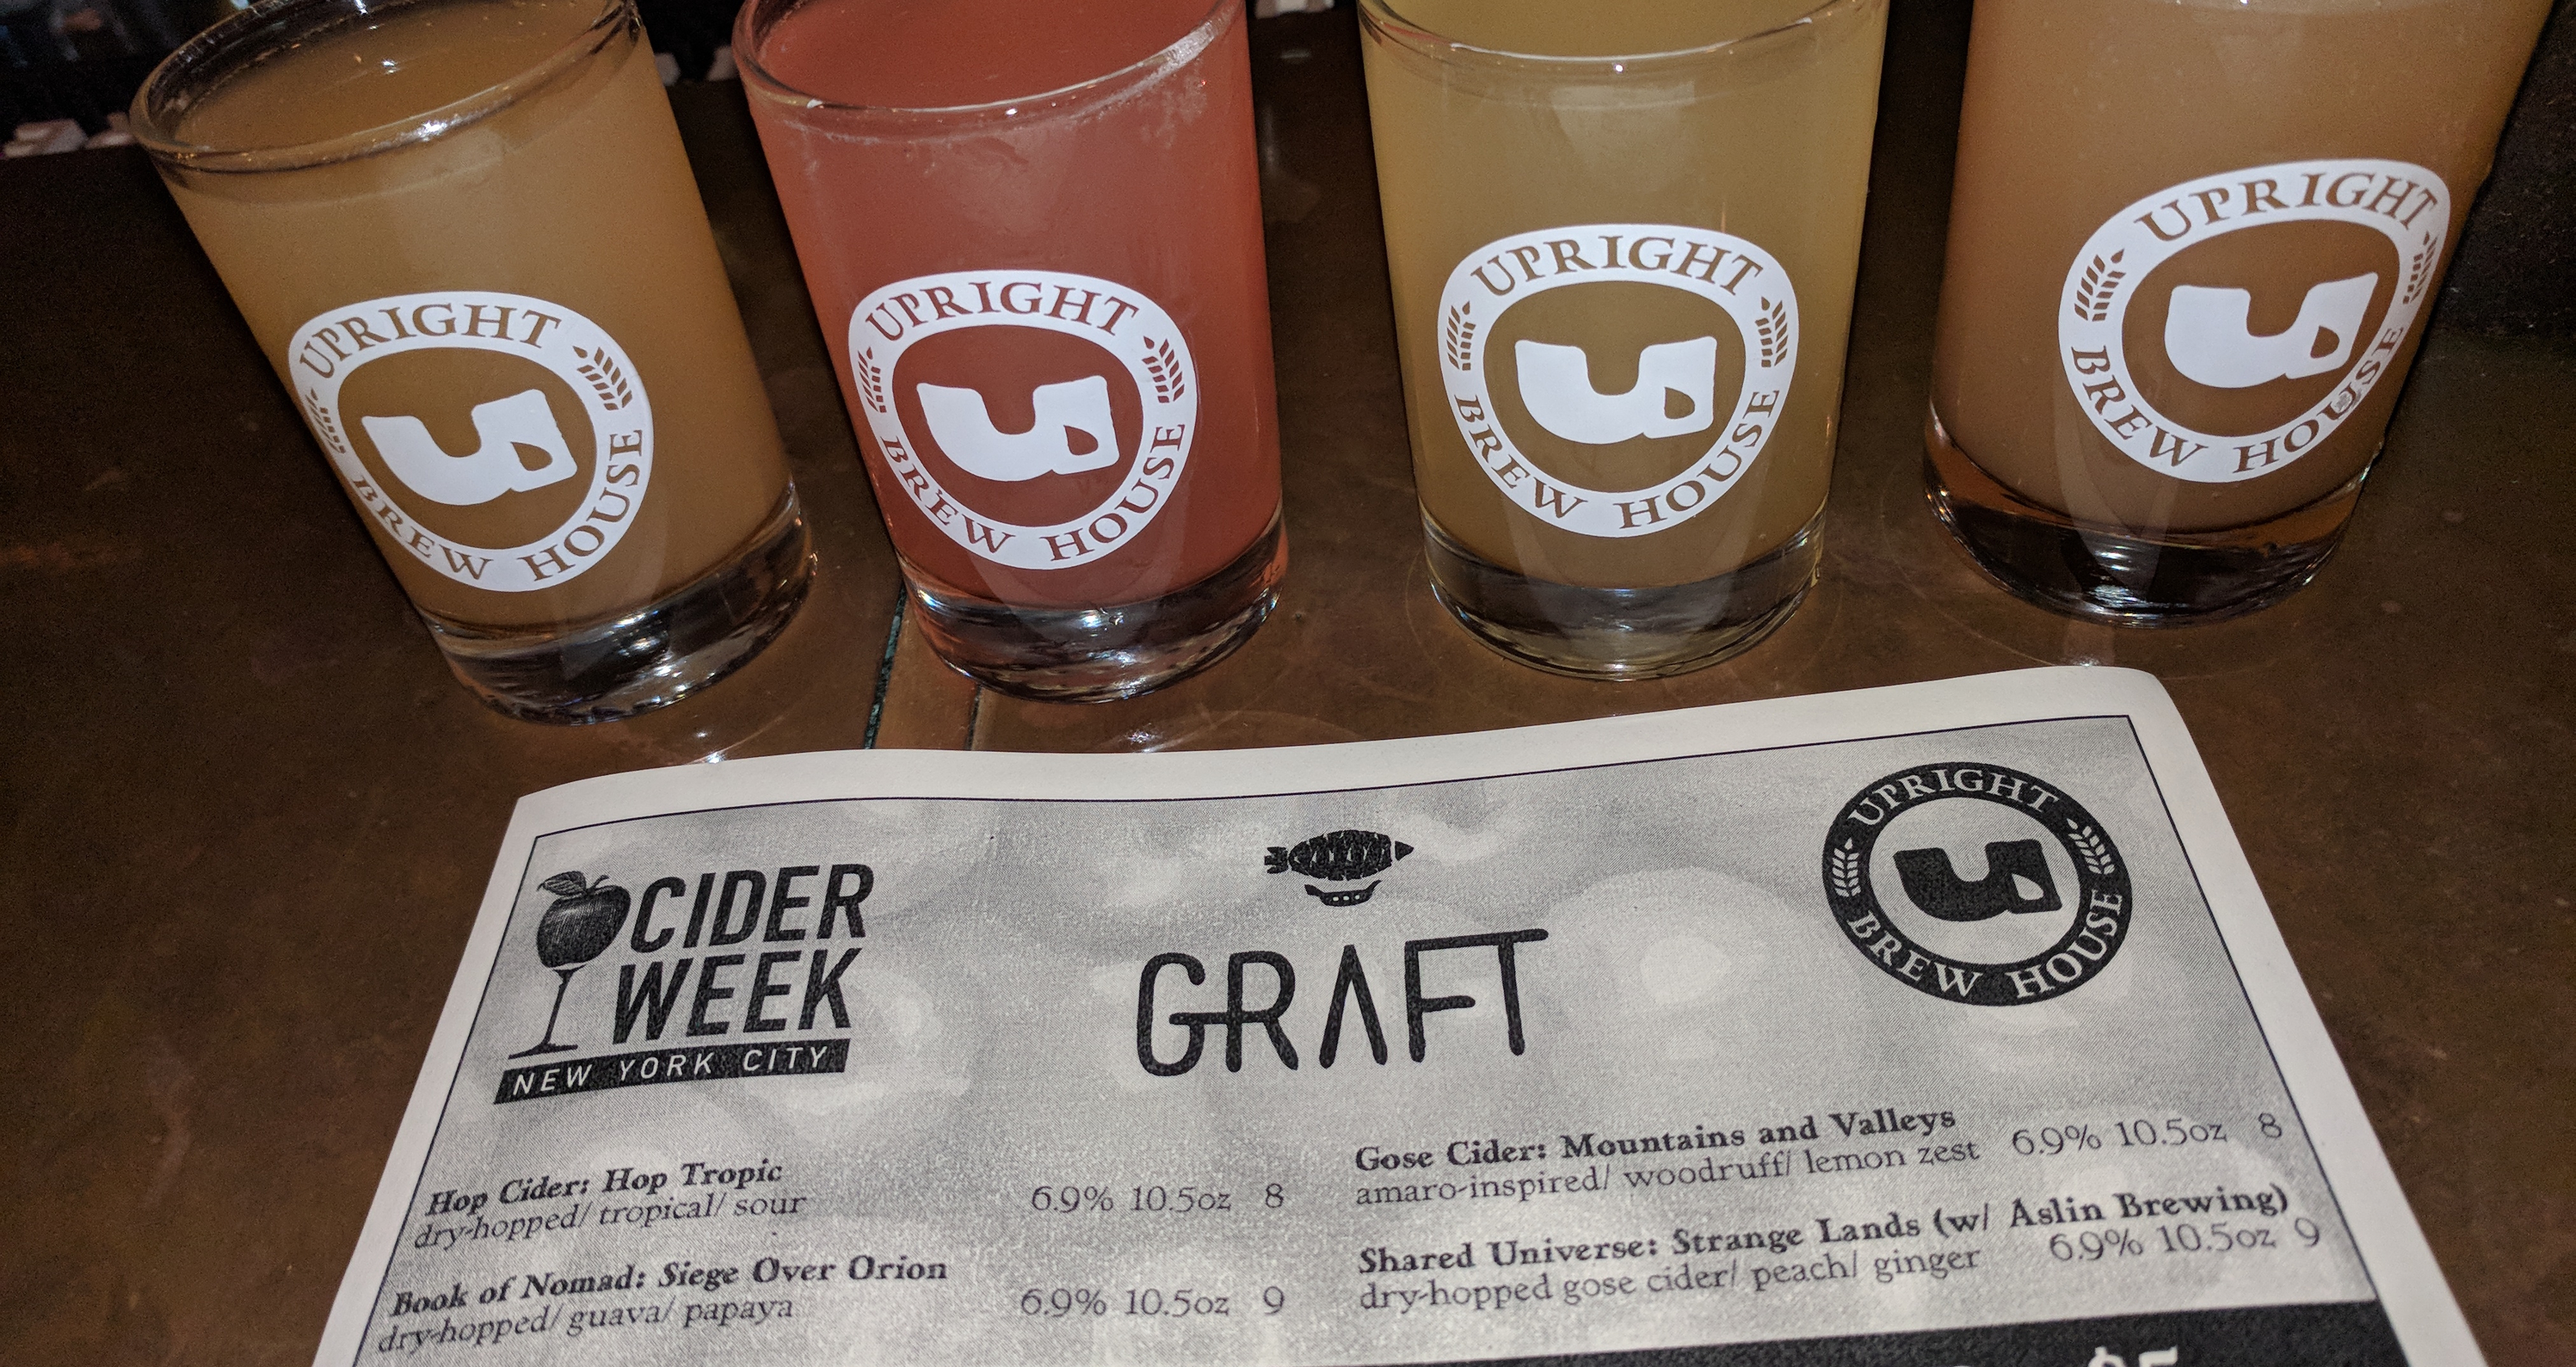 Graft Cider at Upright Brew House